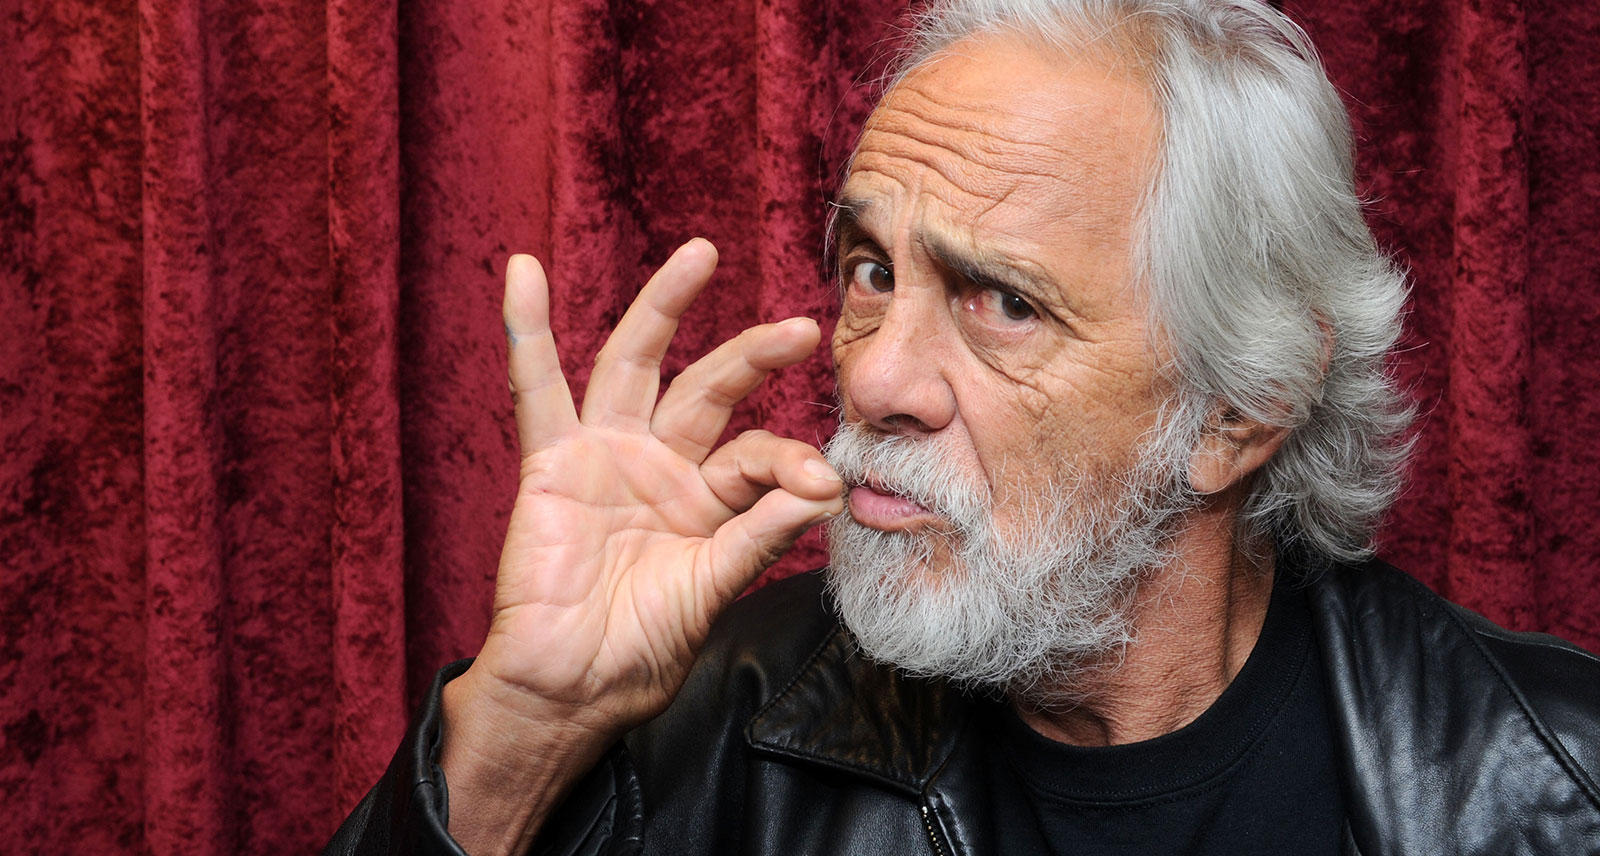 Tommy Chong (naturalized American citizen) nudes (79 photo), Ass, Paparazzi, Feet, cleavage 2020